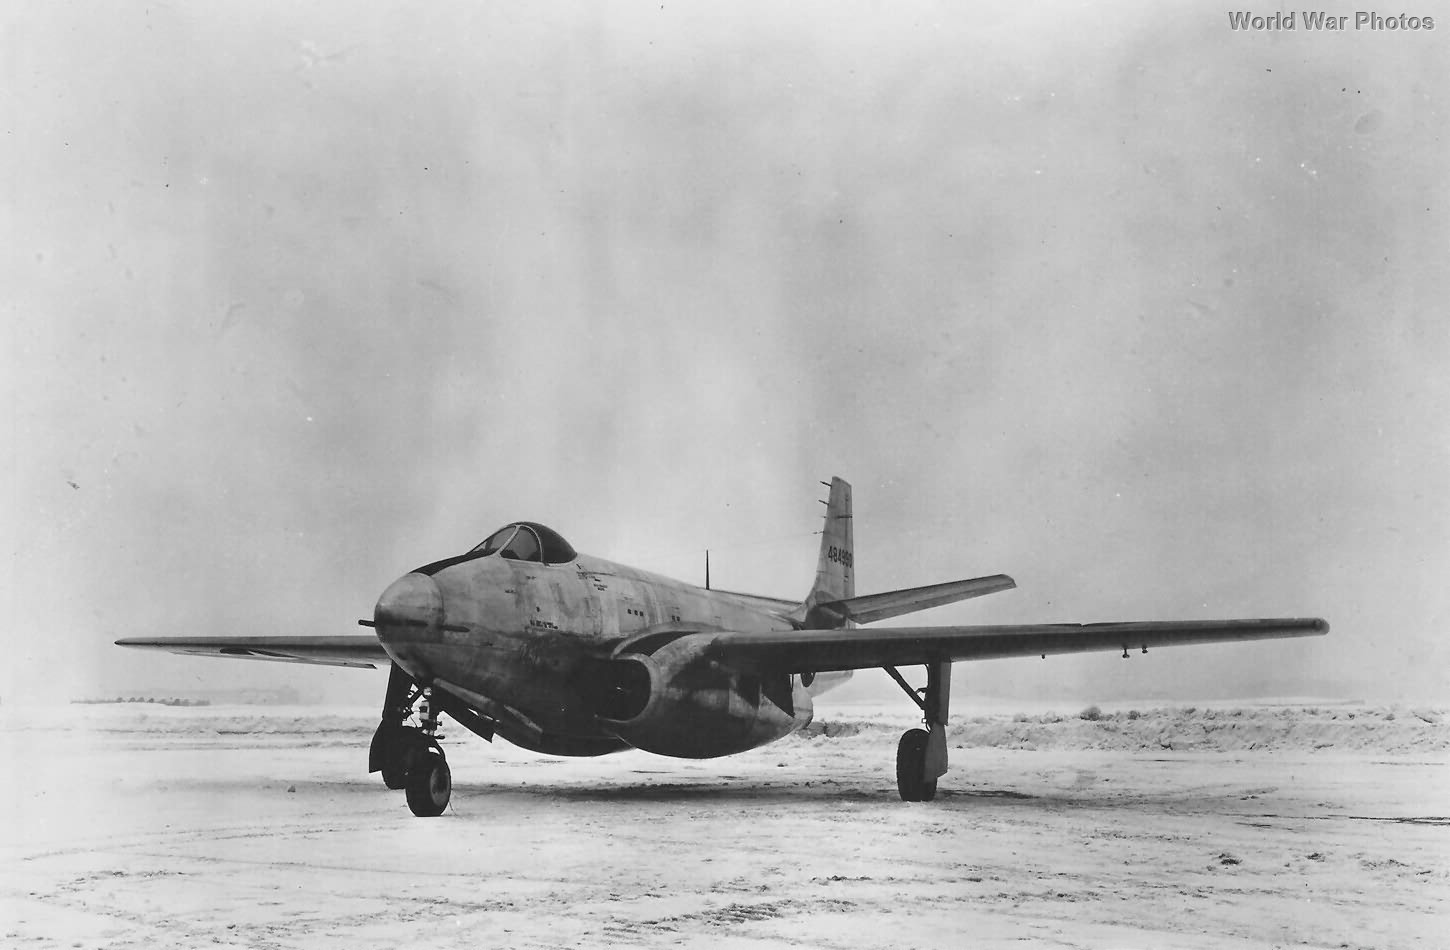 Bell XP-83 8 February 1945